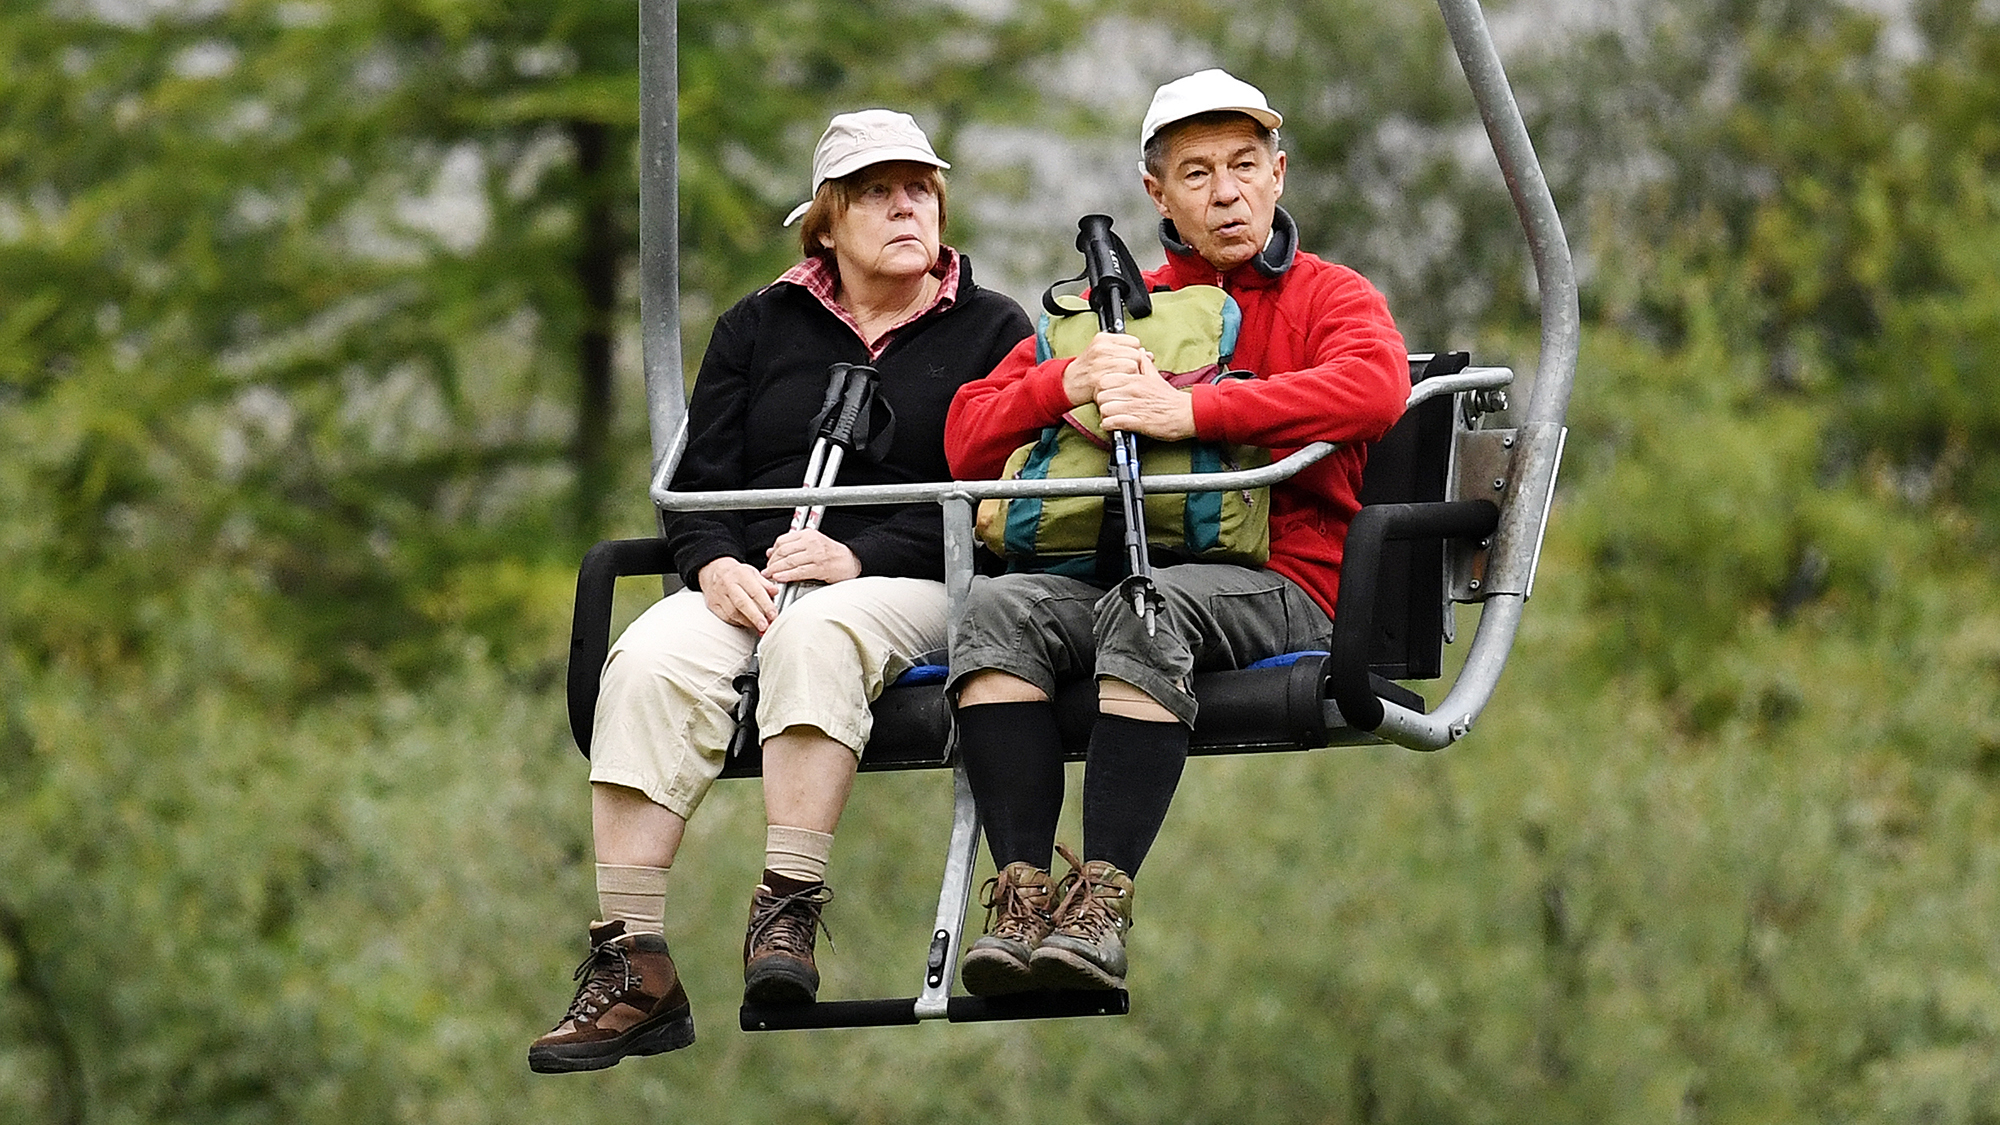 EXCLUSIVE PICTURES Angela Merkel and her husband Joachim Sauer are seen on a chair lift during their holidays on July 30, 201